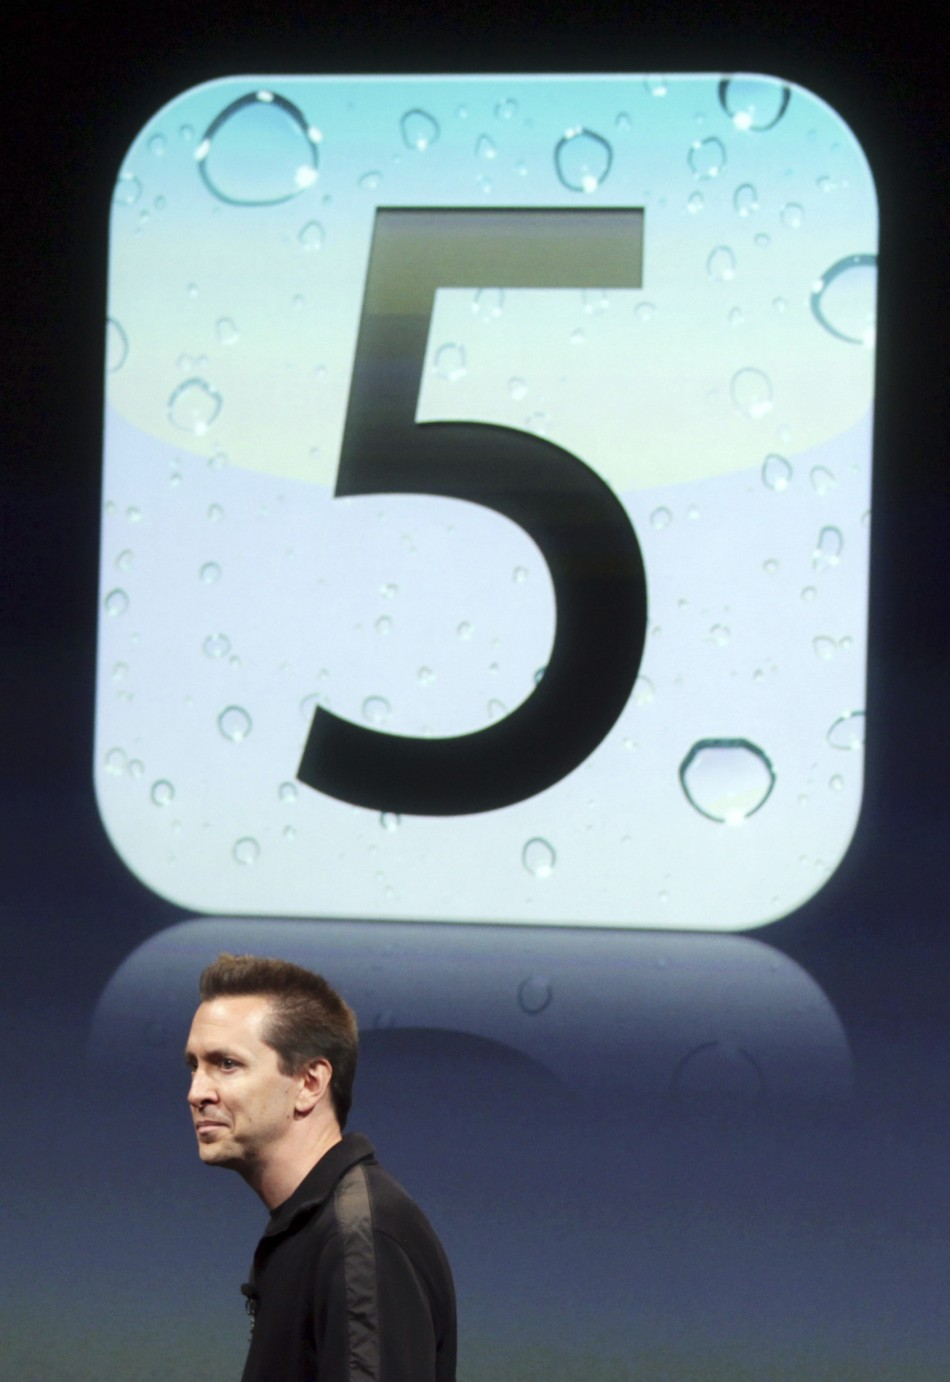 Scott Forstall, senior vice president of iPhone Software at Apple, speaks about iOS5 at Apple headquarters in Cupertino 04/10/2011